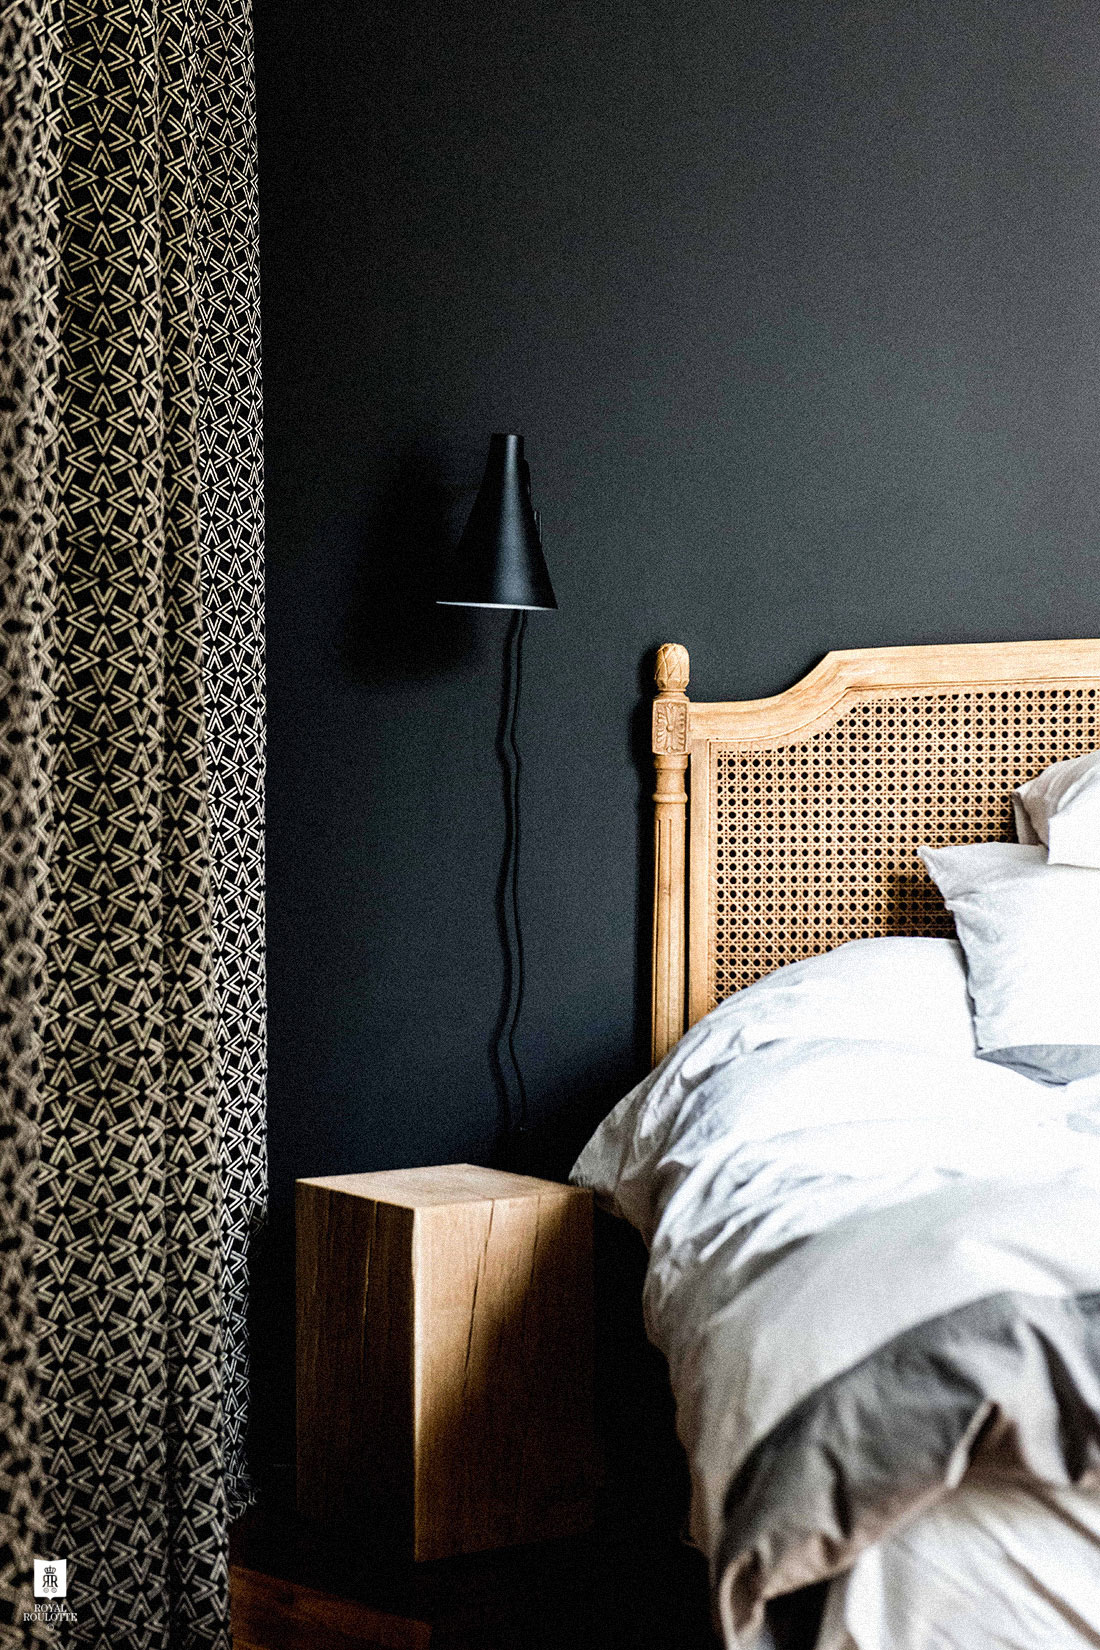 12 Dark Bedroom Ideas for a Cozy and Dramatic Look featured by top US lifestyle blog, Dreaming Loud: black bedroom with cane bed frame | Dark Bedroom Ideas by popular Michigan lifestyle blog, Dreaming Loud: image of a bedroom with black walls and a cane bed frame.